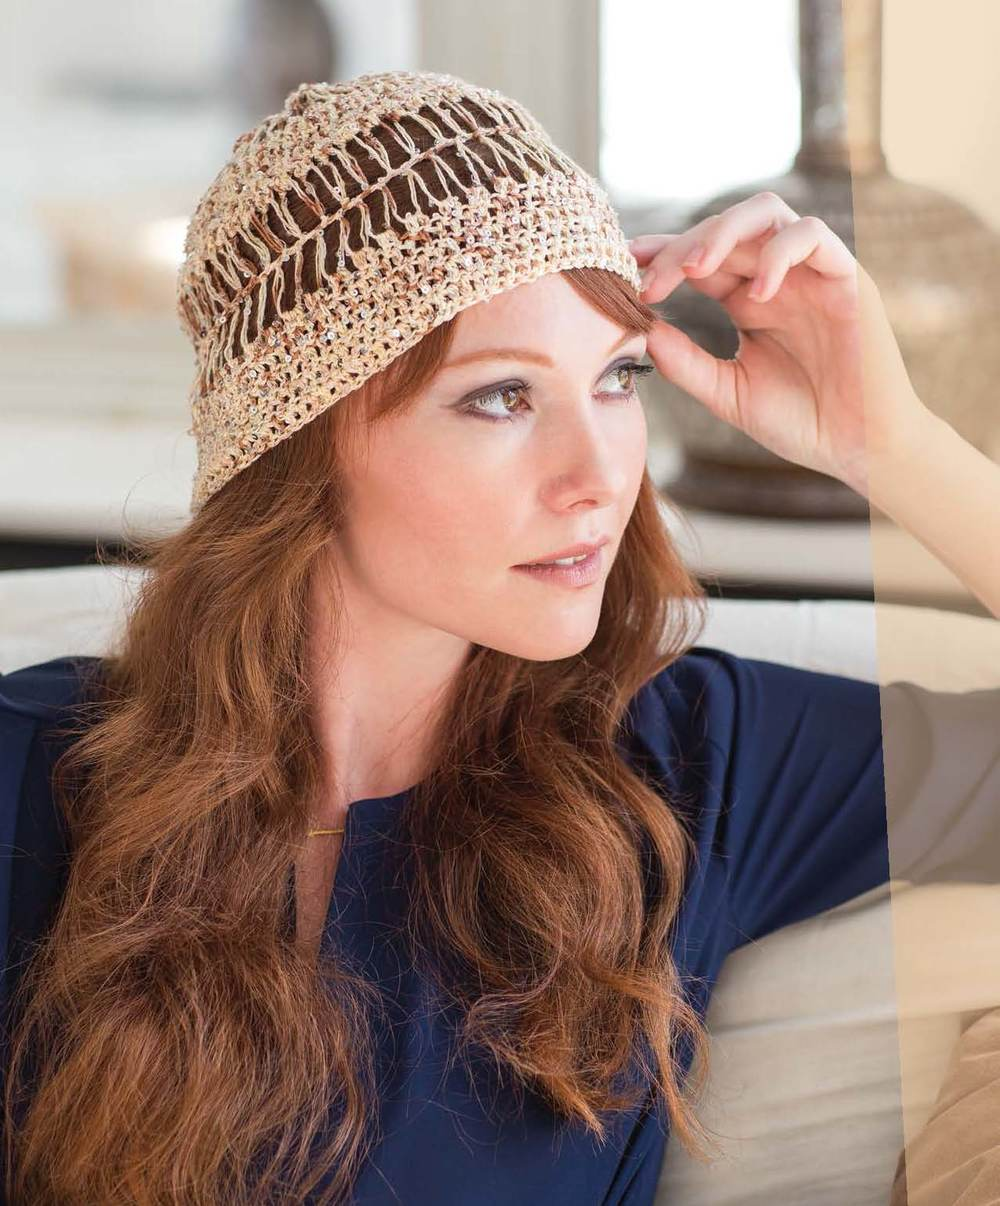 Crochet So Lovely -  Hairpin Lace Hat beauty shot.jpg